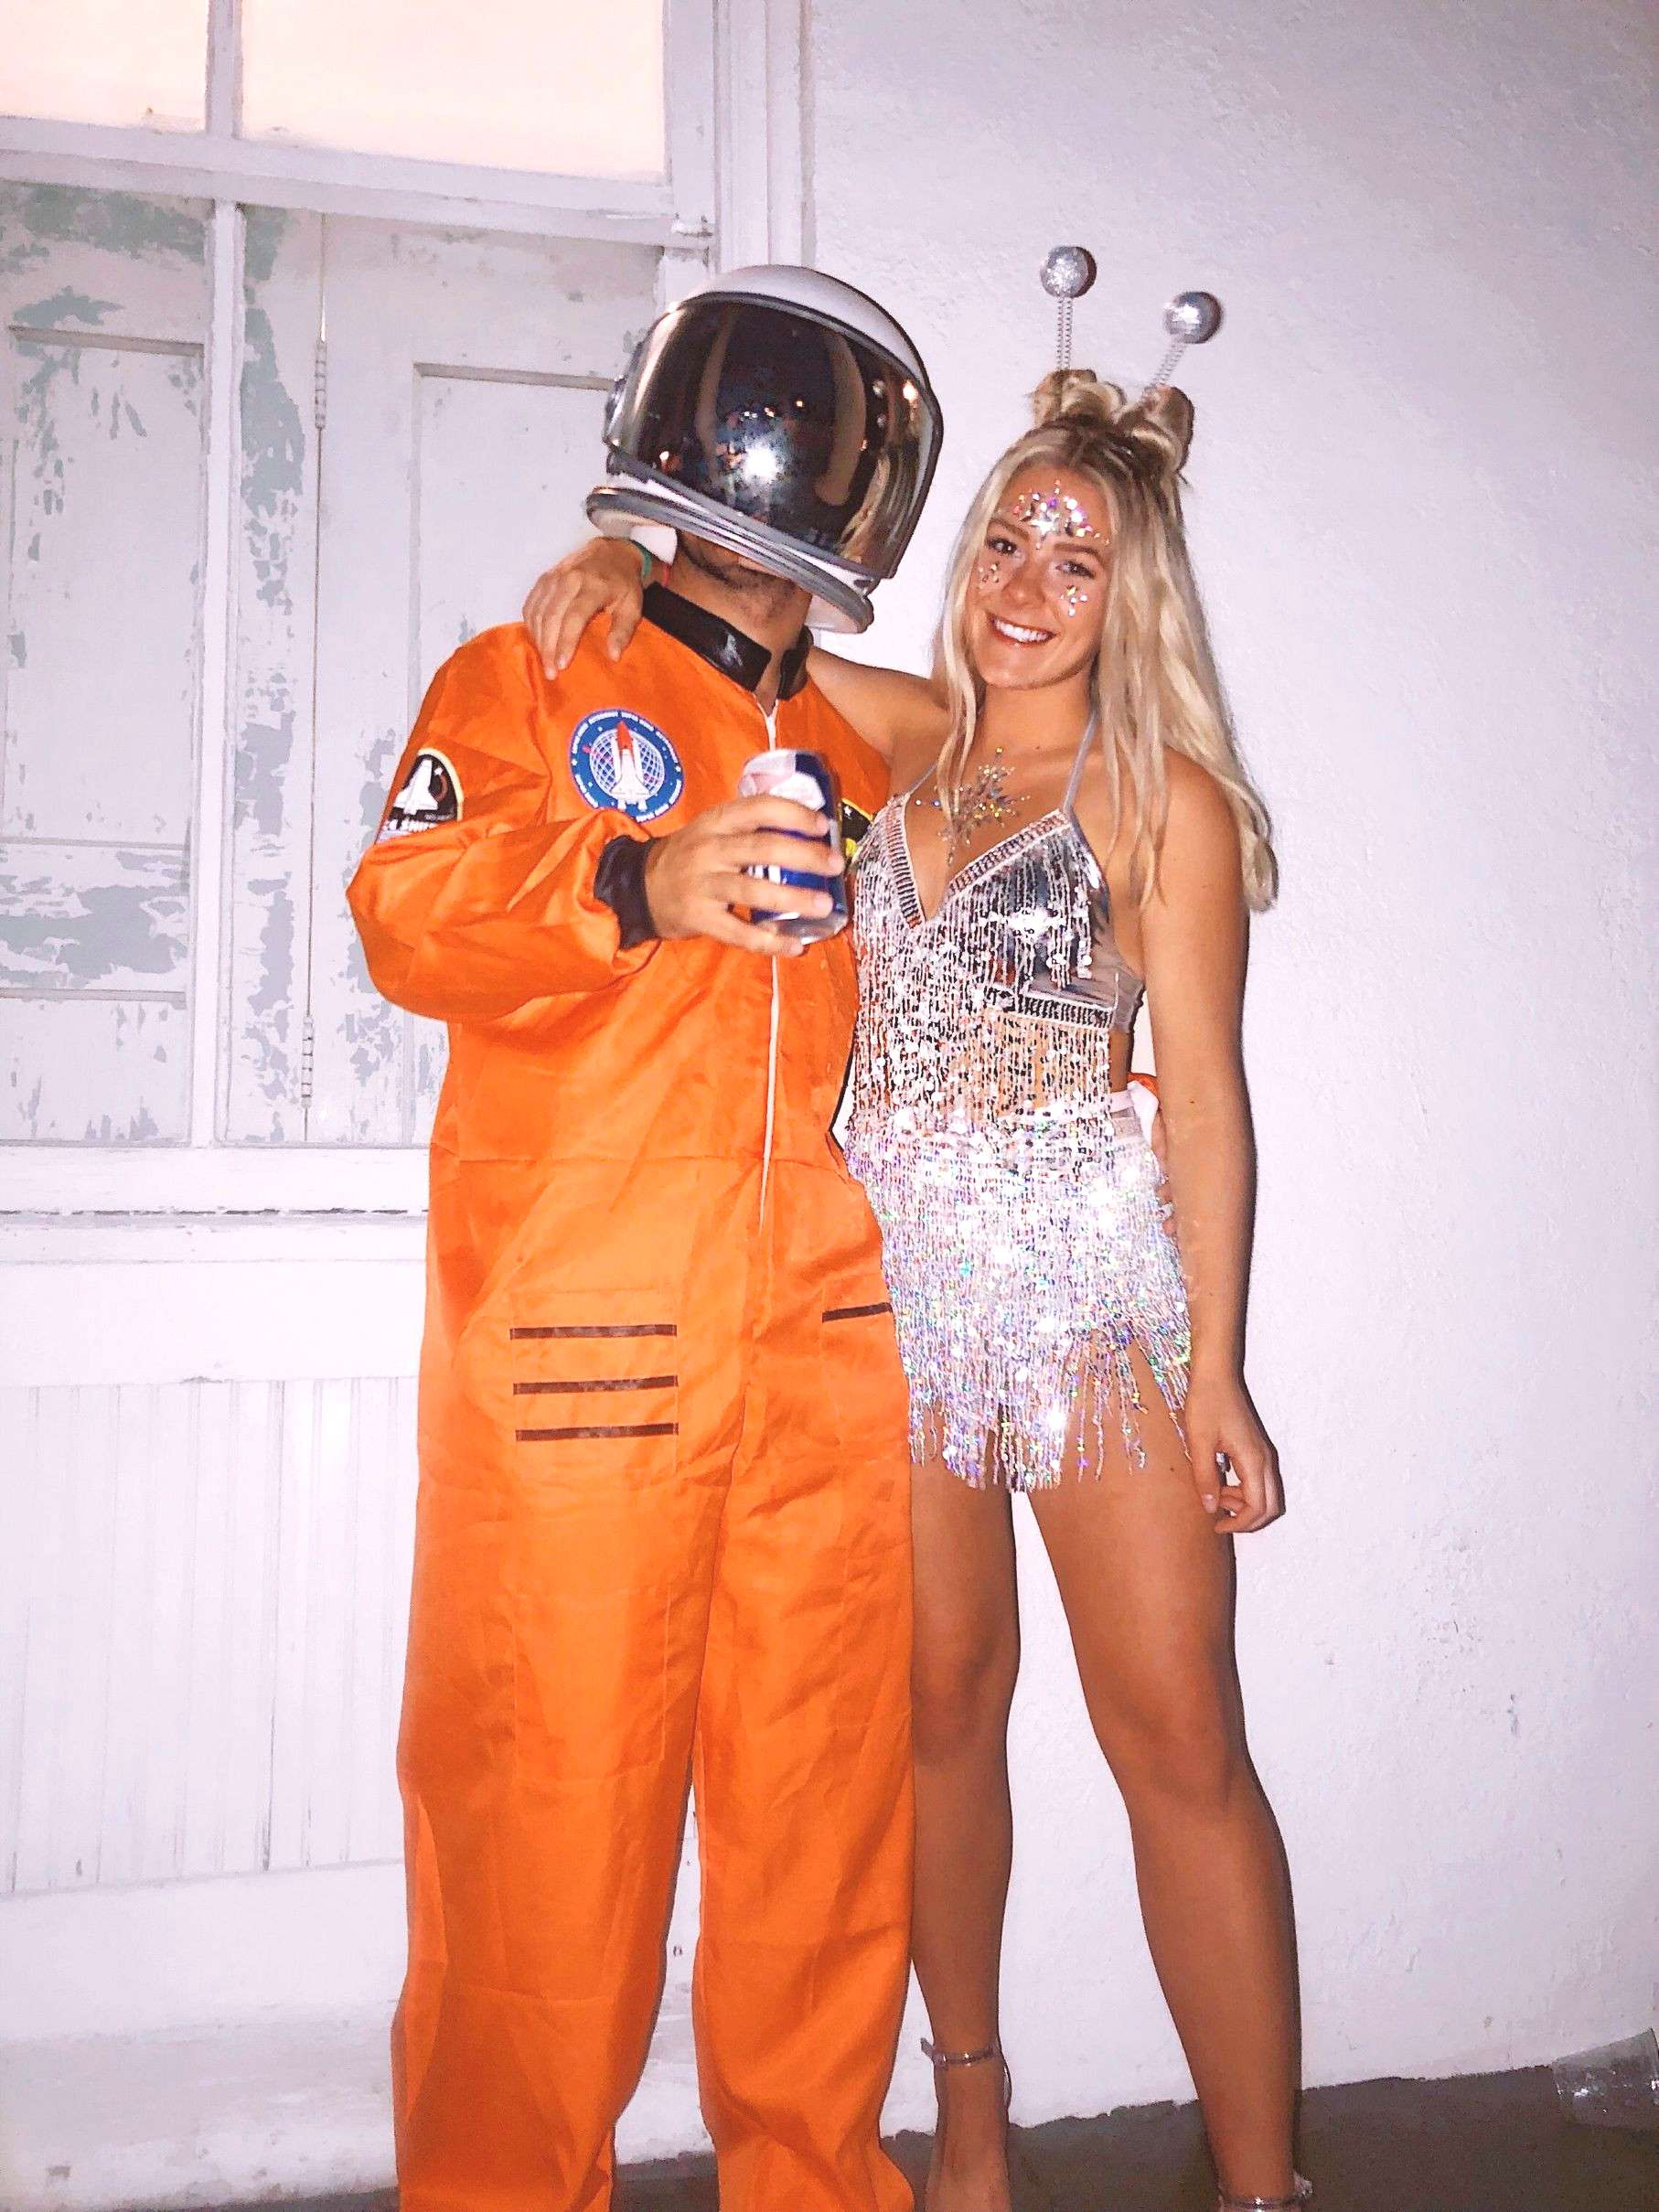 50+ Couple Halloween Costumes - How to Pick the Perfect Halloween Costumes For Your Partner Is it H